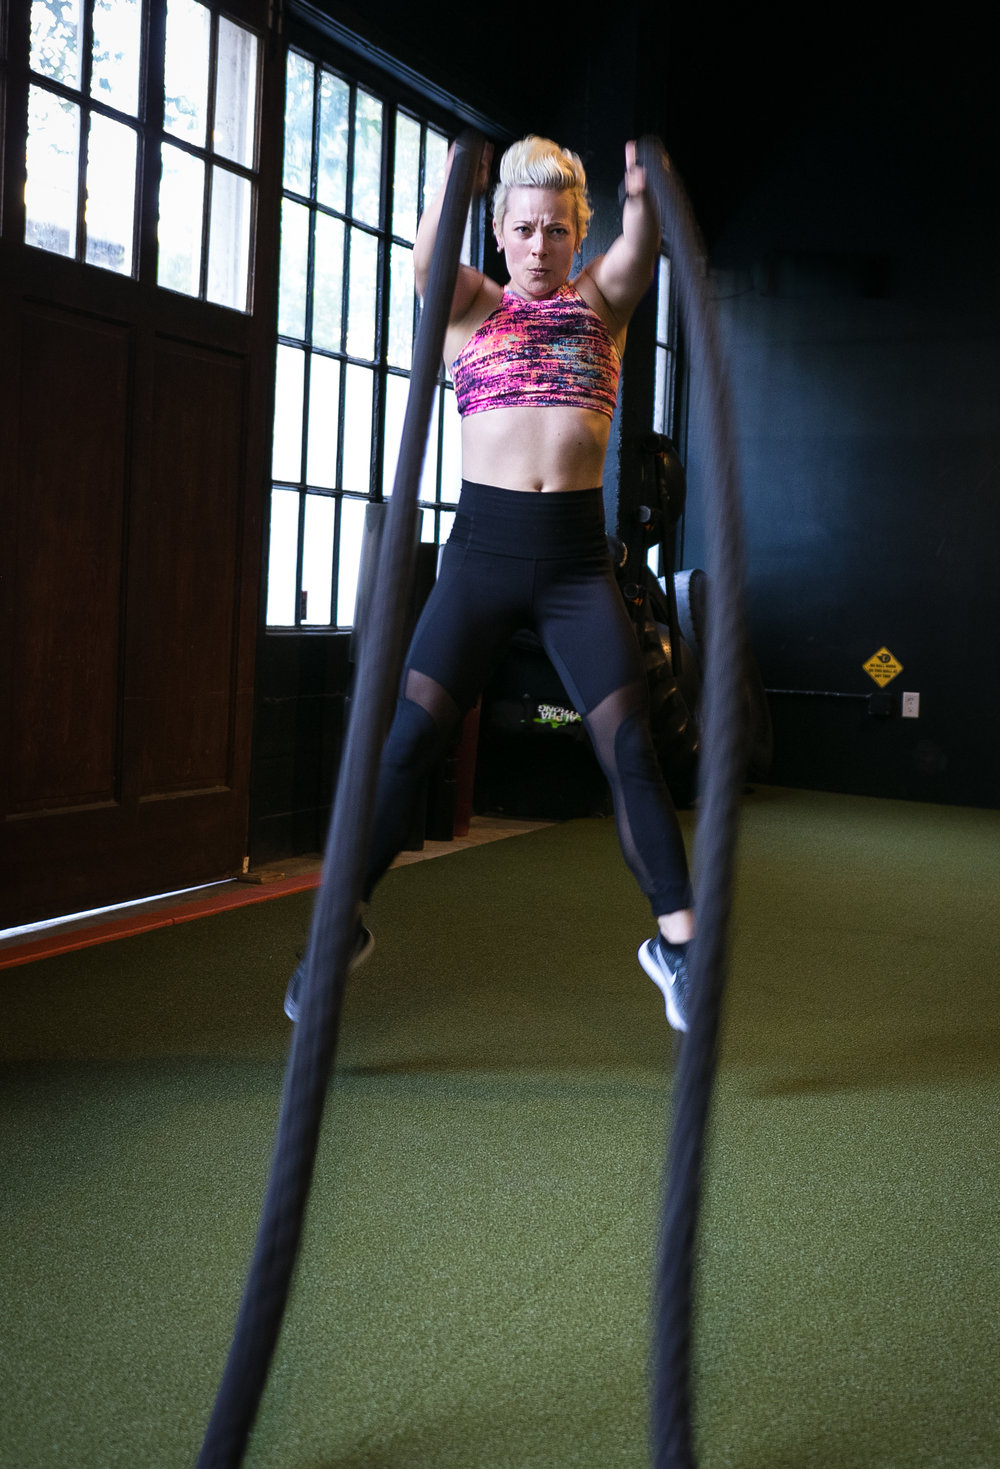 DIAKADI Trainer Natalie Carey battle rope high intensity.jpg